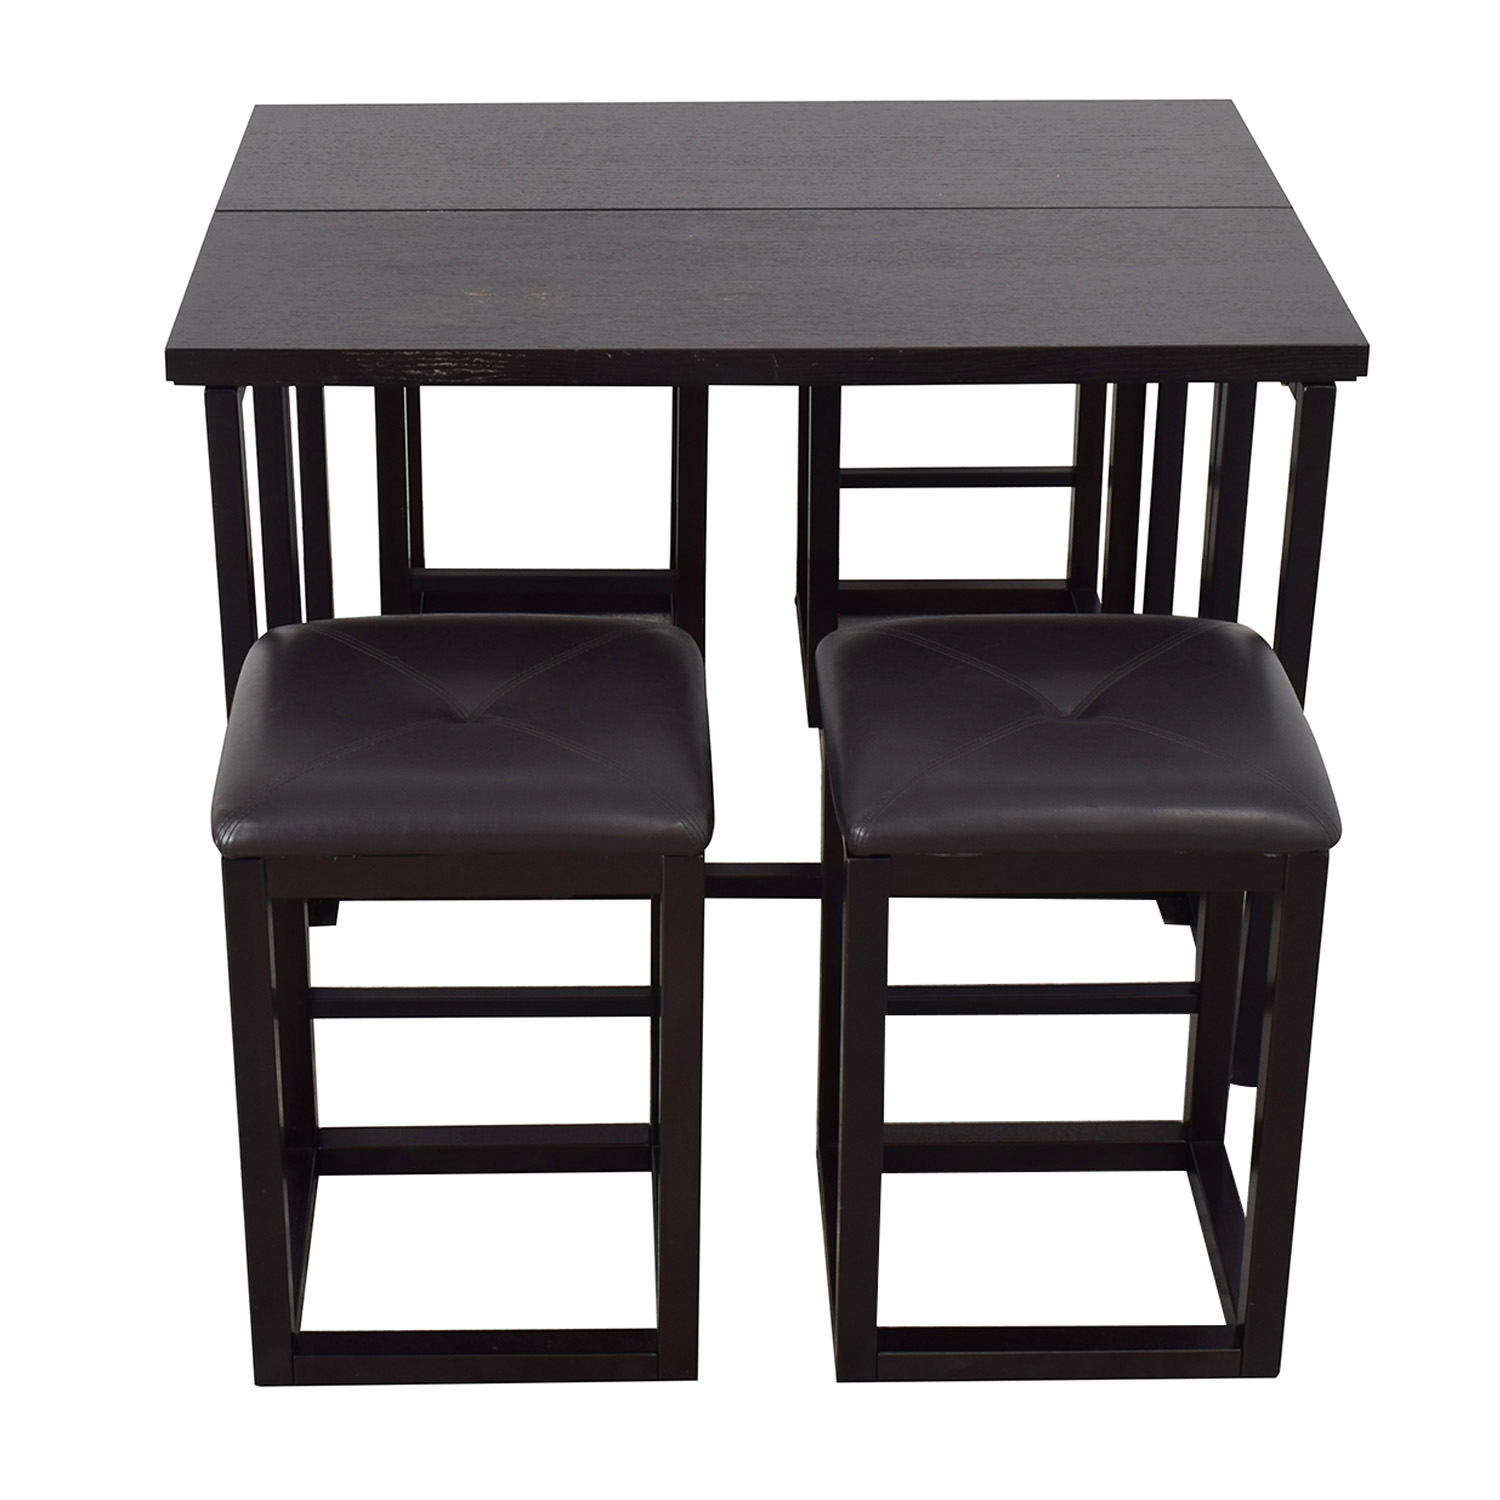 buy  Counter Height Dining Table with Stools online